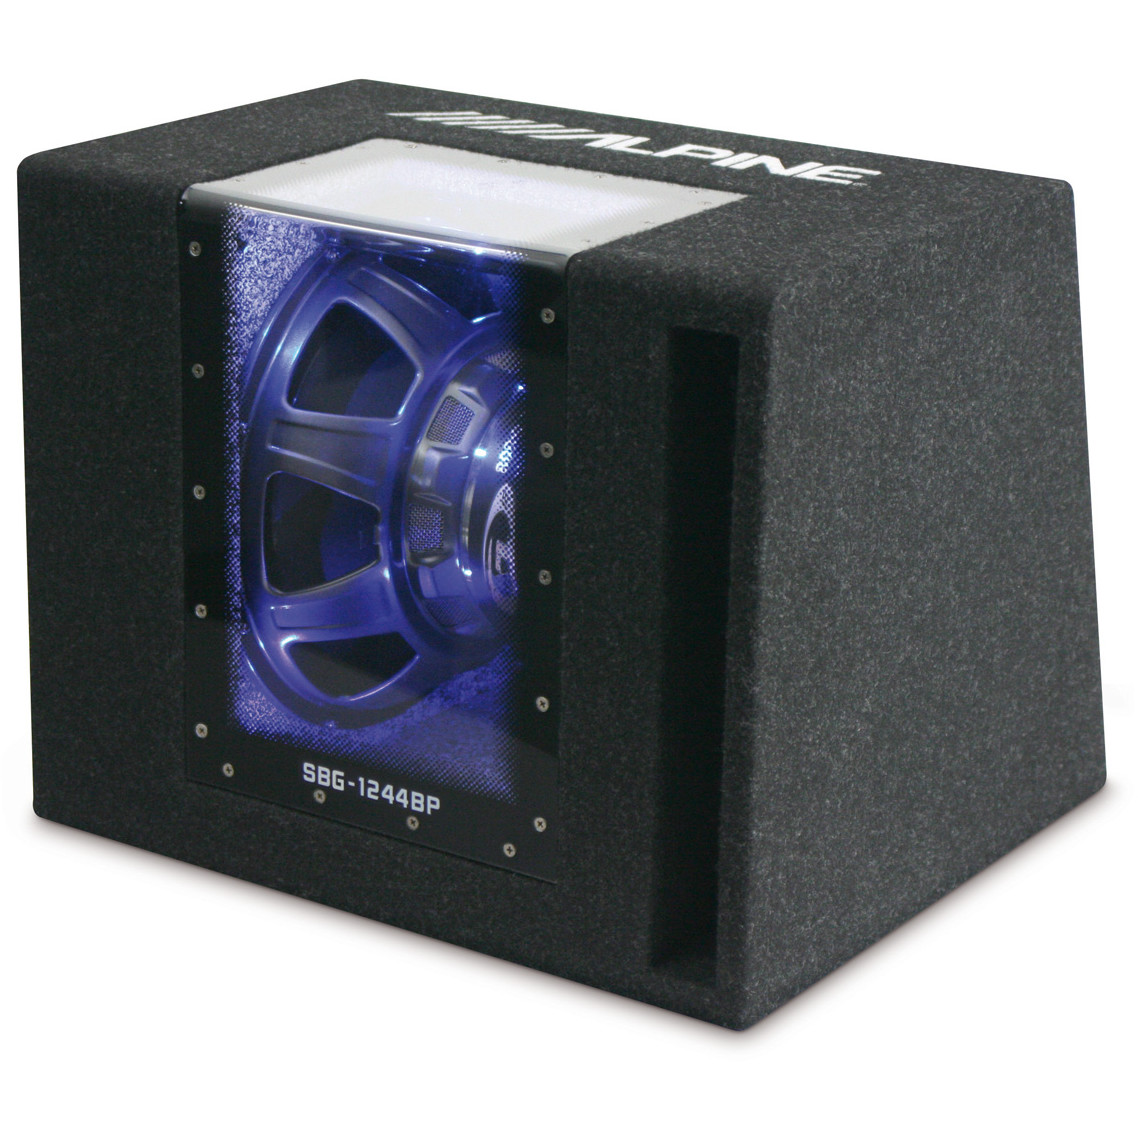 Boxe auto SBG-1244BP, Subwoofer auto Band Pass, 30 cm